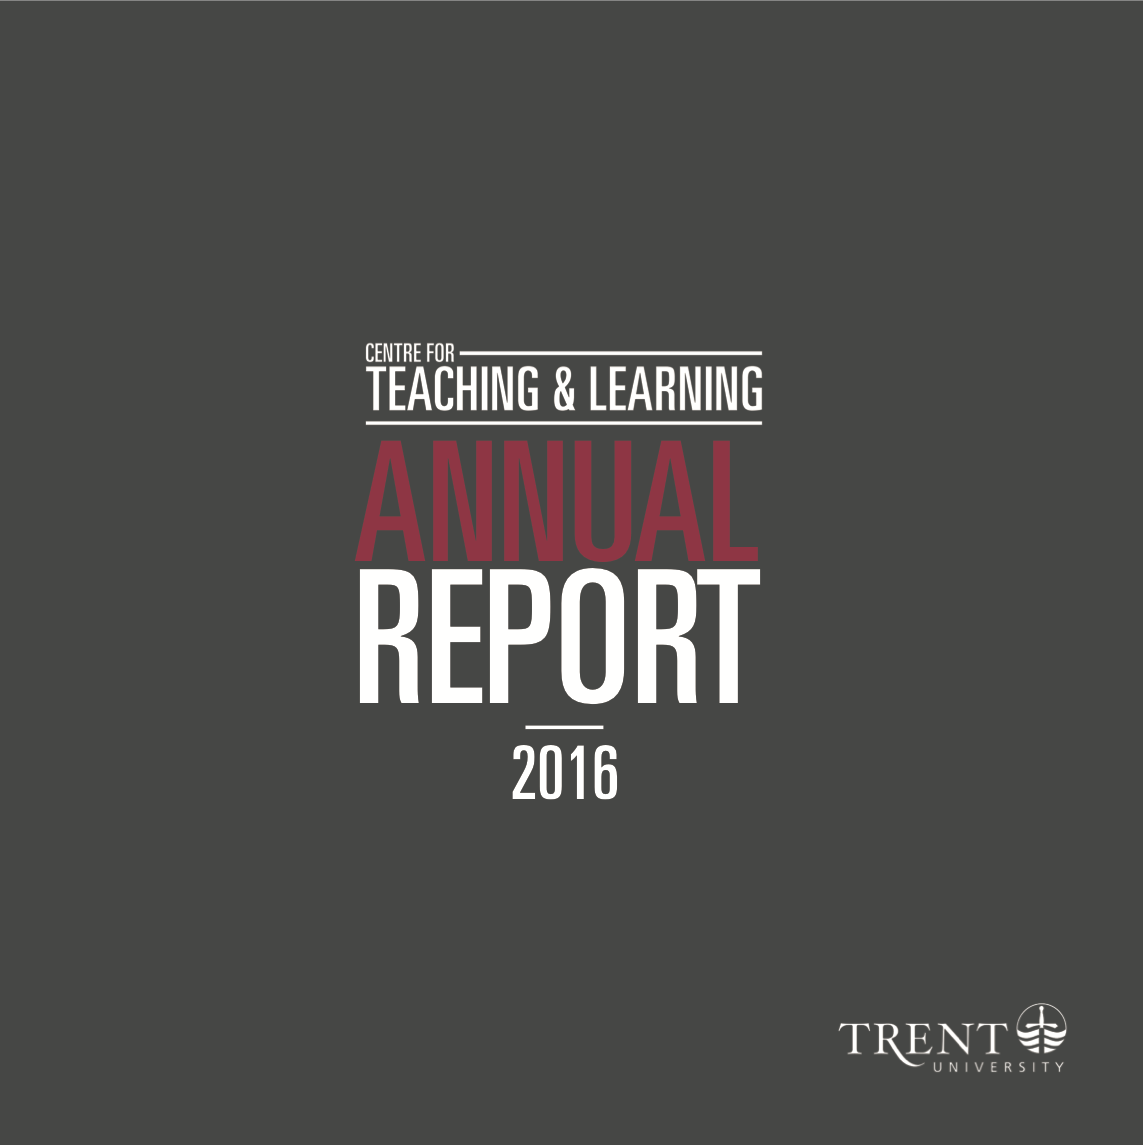 Image of cover for the 2016 Annual Report, dark grey background with white and red lettering